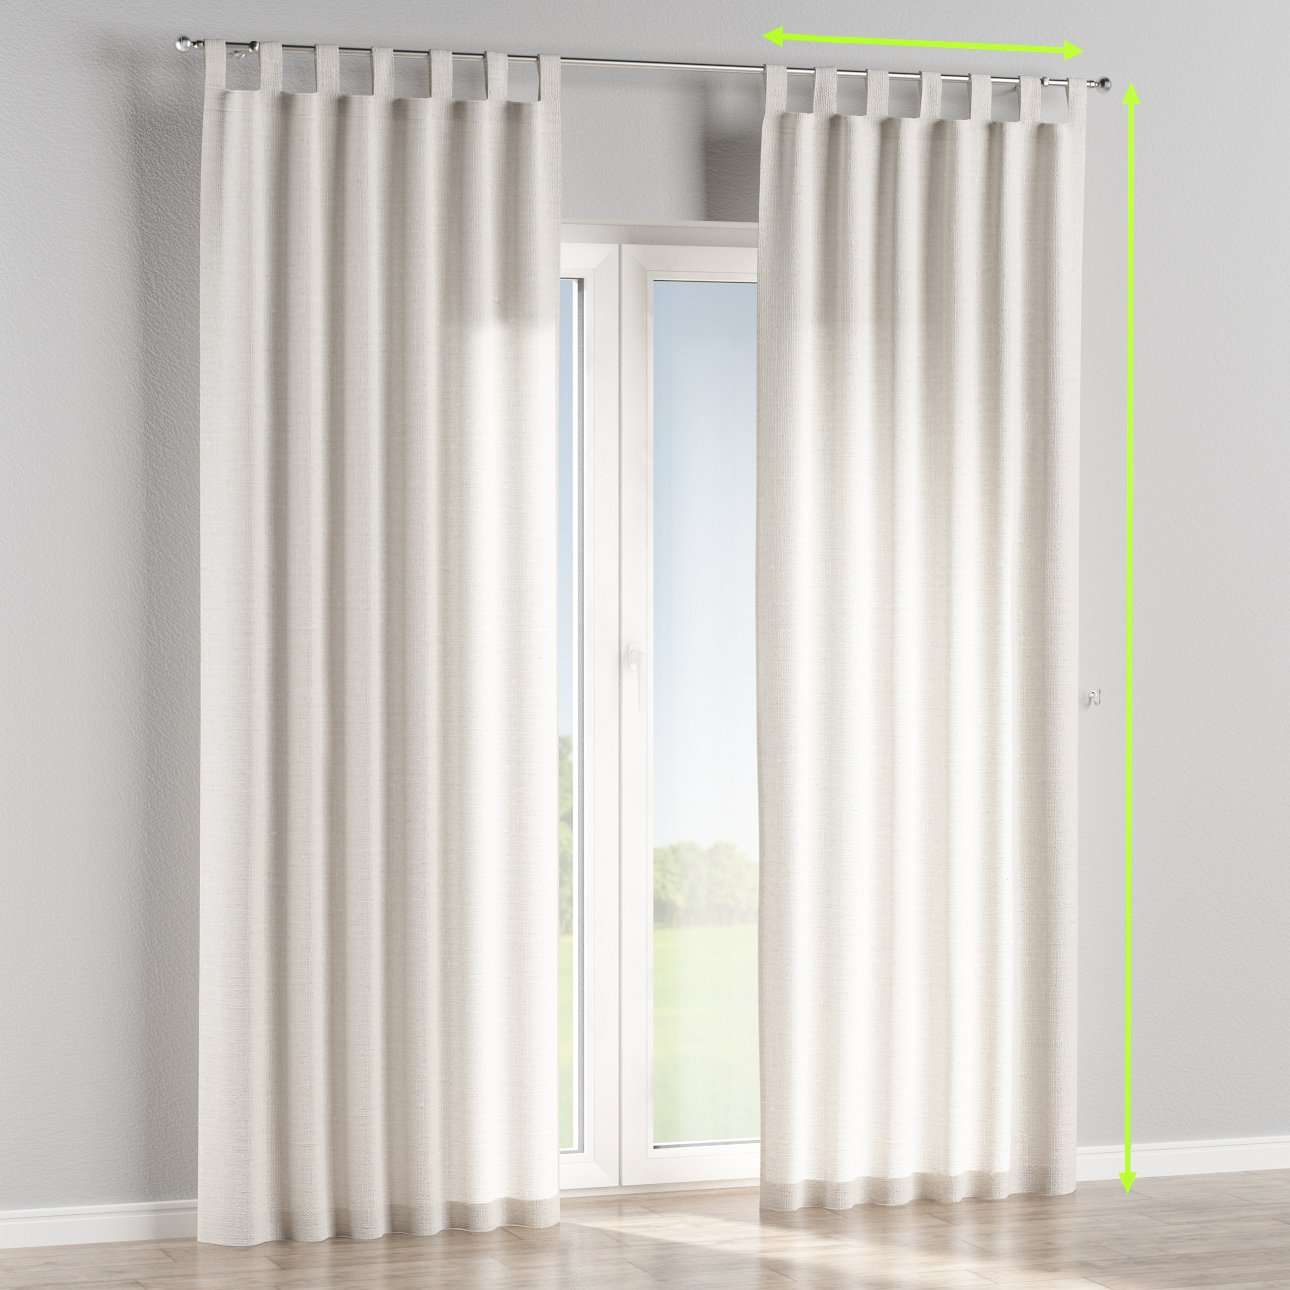 Tab top curtains in collection Linen , fabric: 392-04